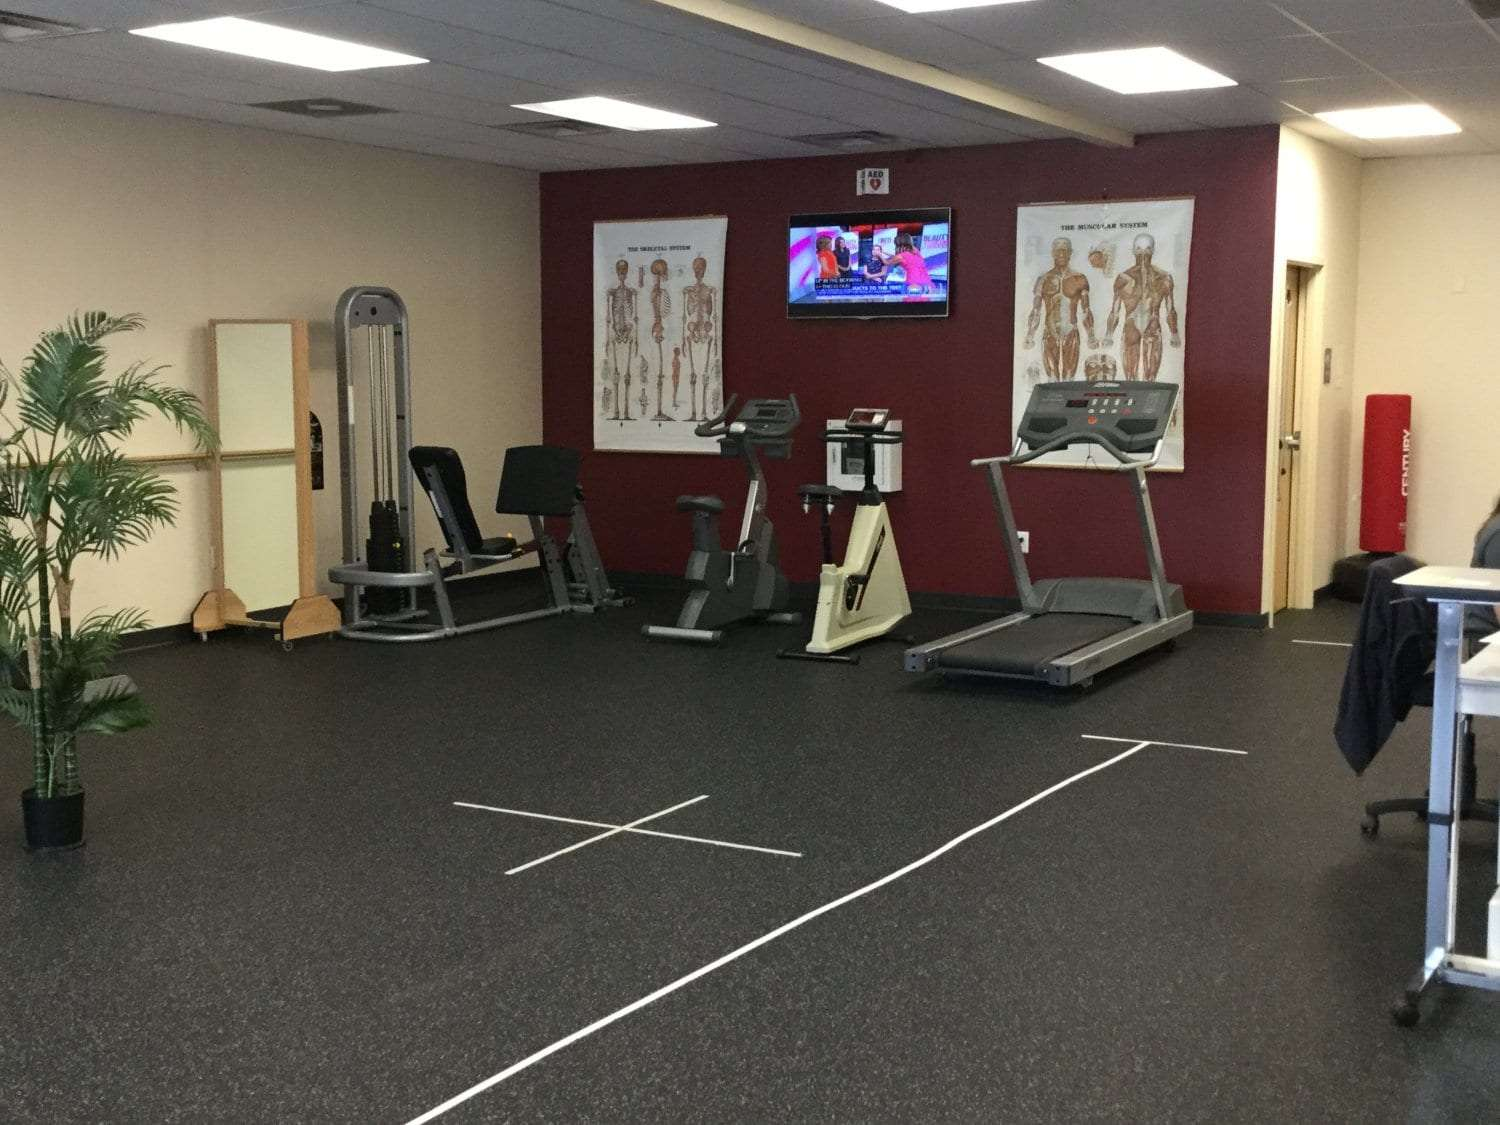 Here is an image of the interior of our physical therapy clinic in Sicklerville, New Jersey.